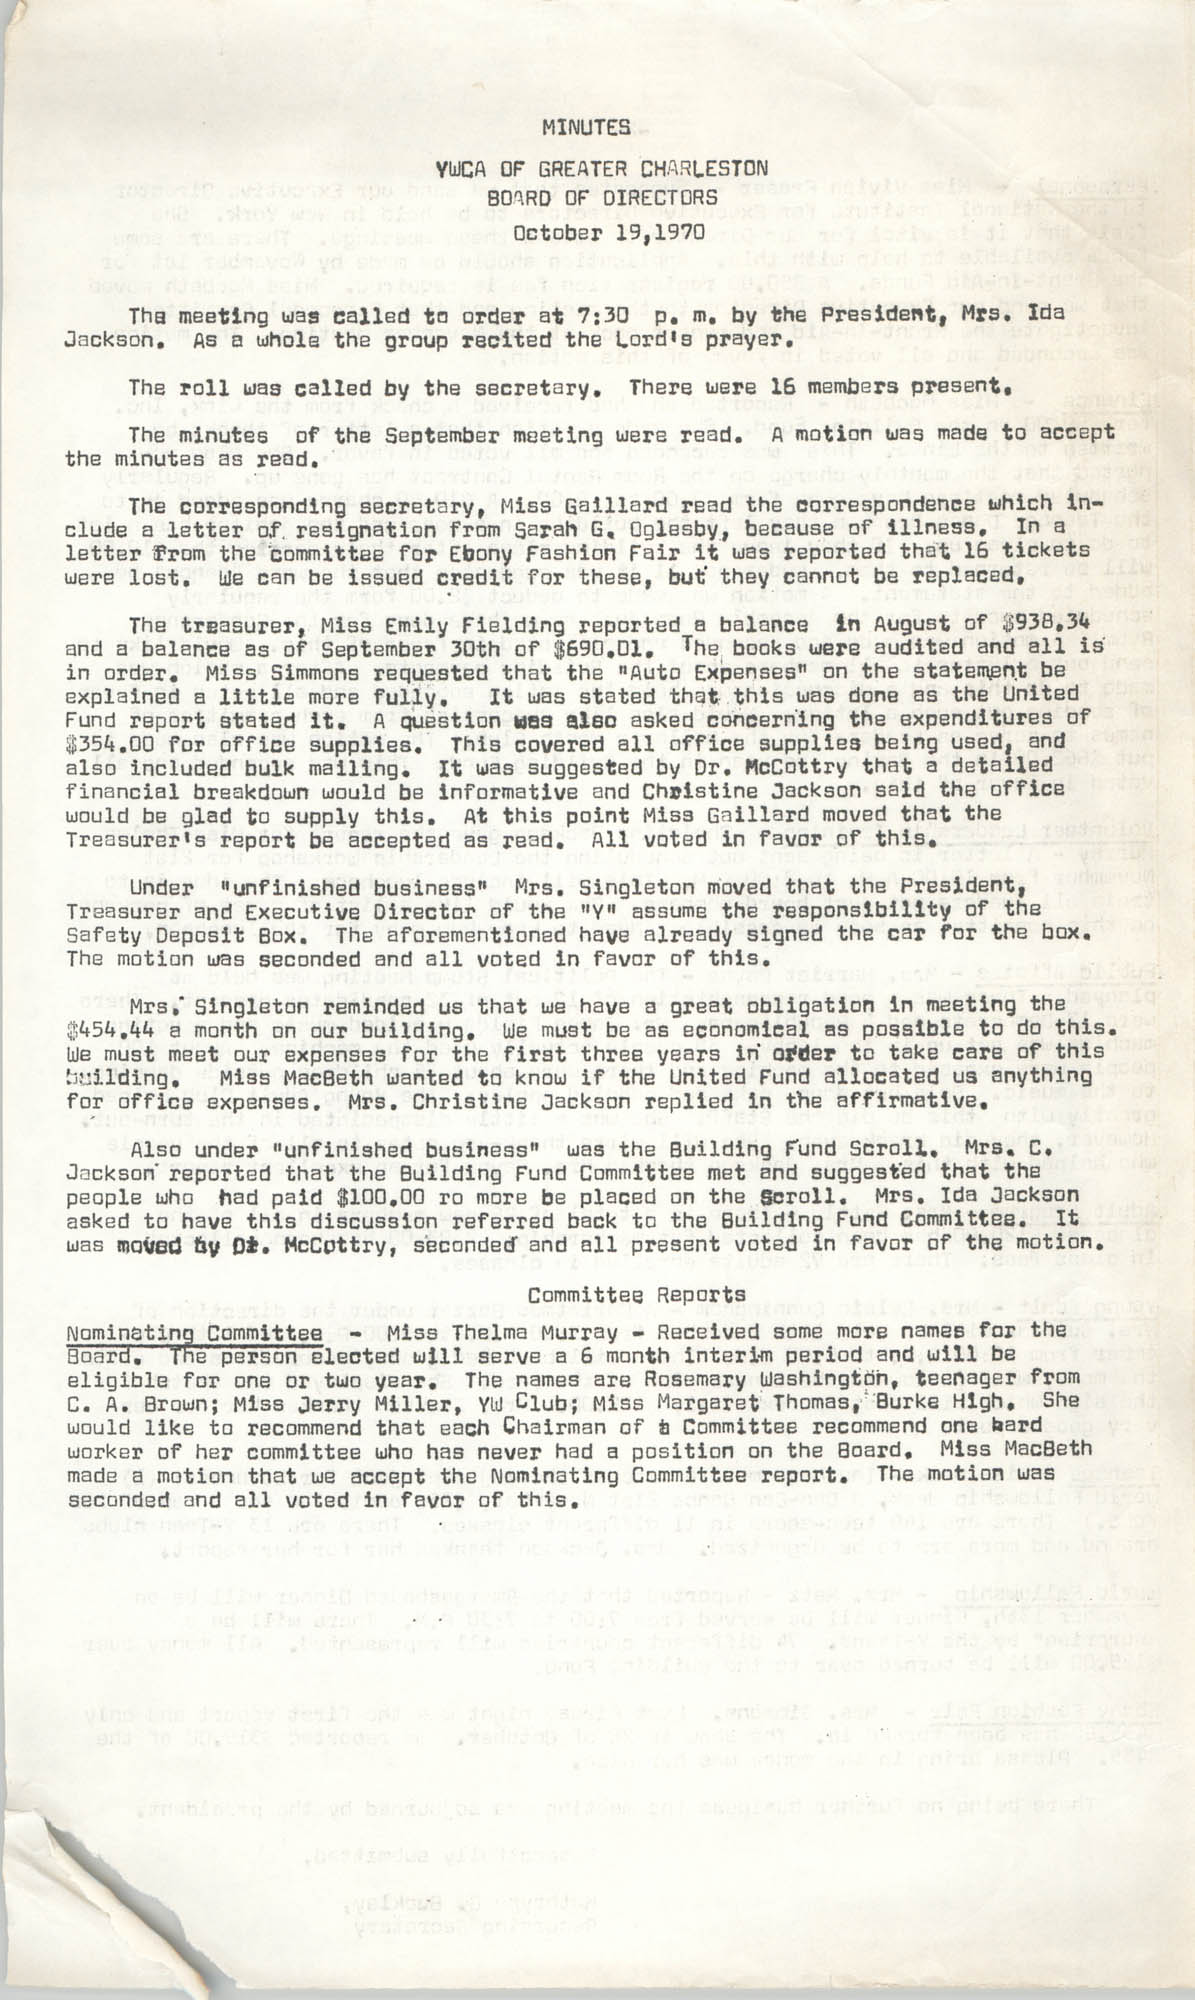 Minutes to the Board of Directors Meeting, Y.W.C.A. of Greater Charleston, October 19, 1970